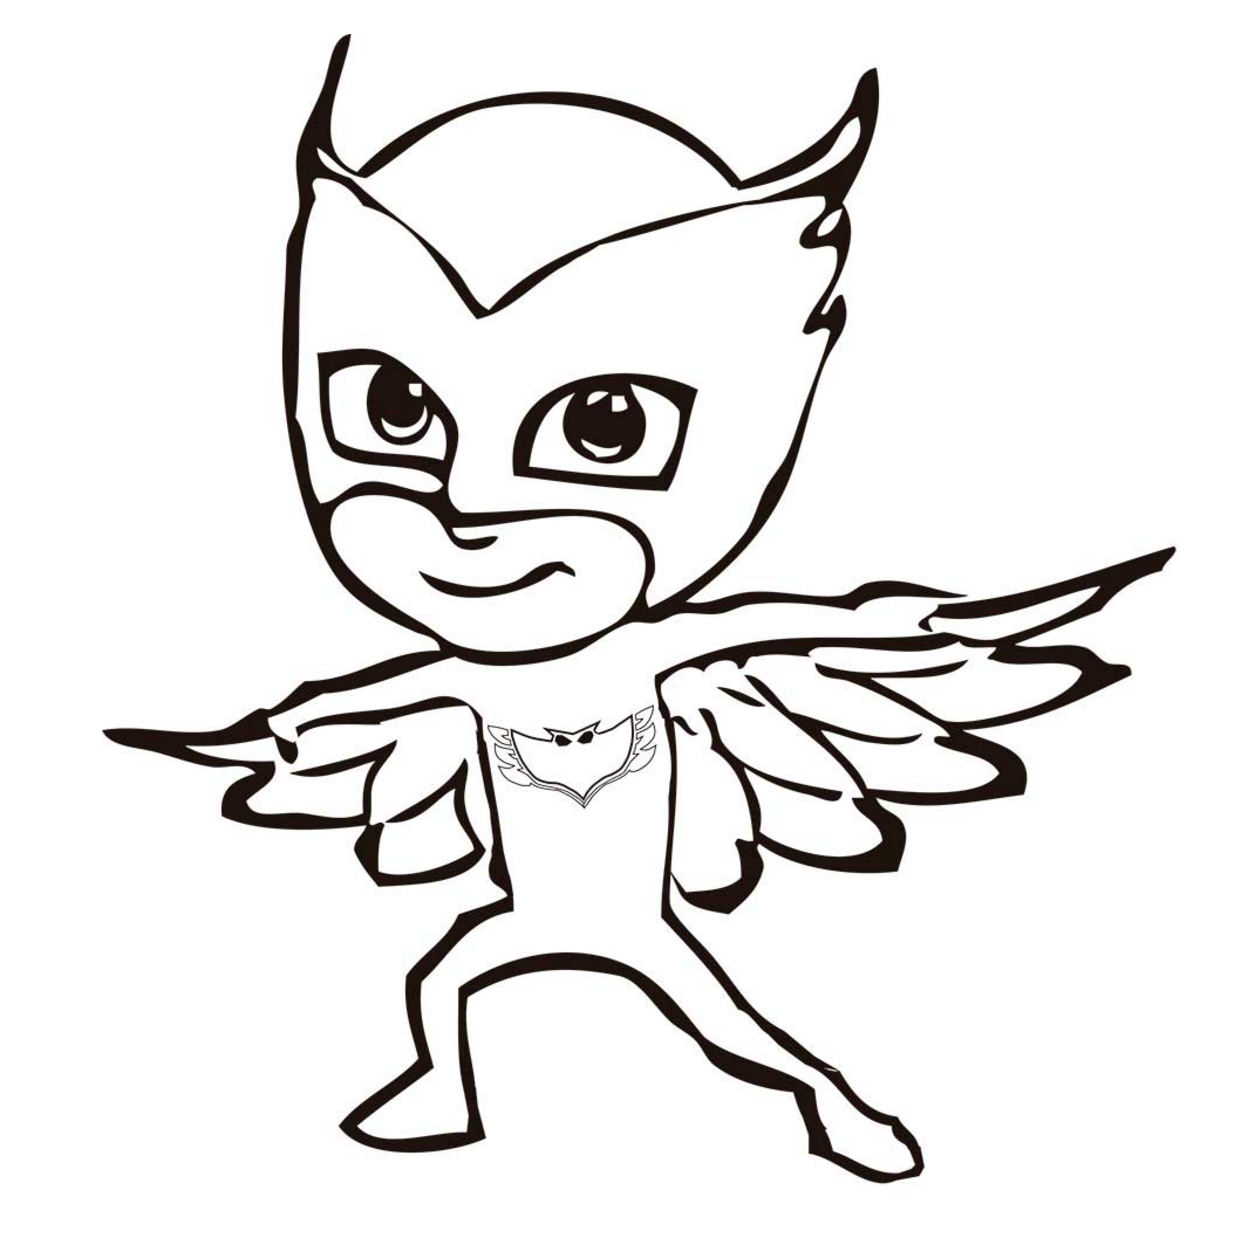 Free Pj Masks Coloring Pages, Download Free Clip Art, Free.